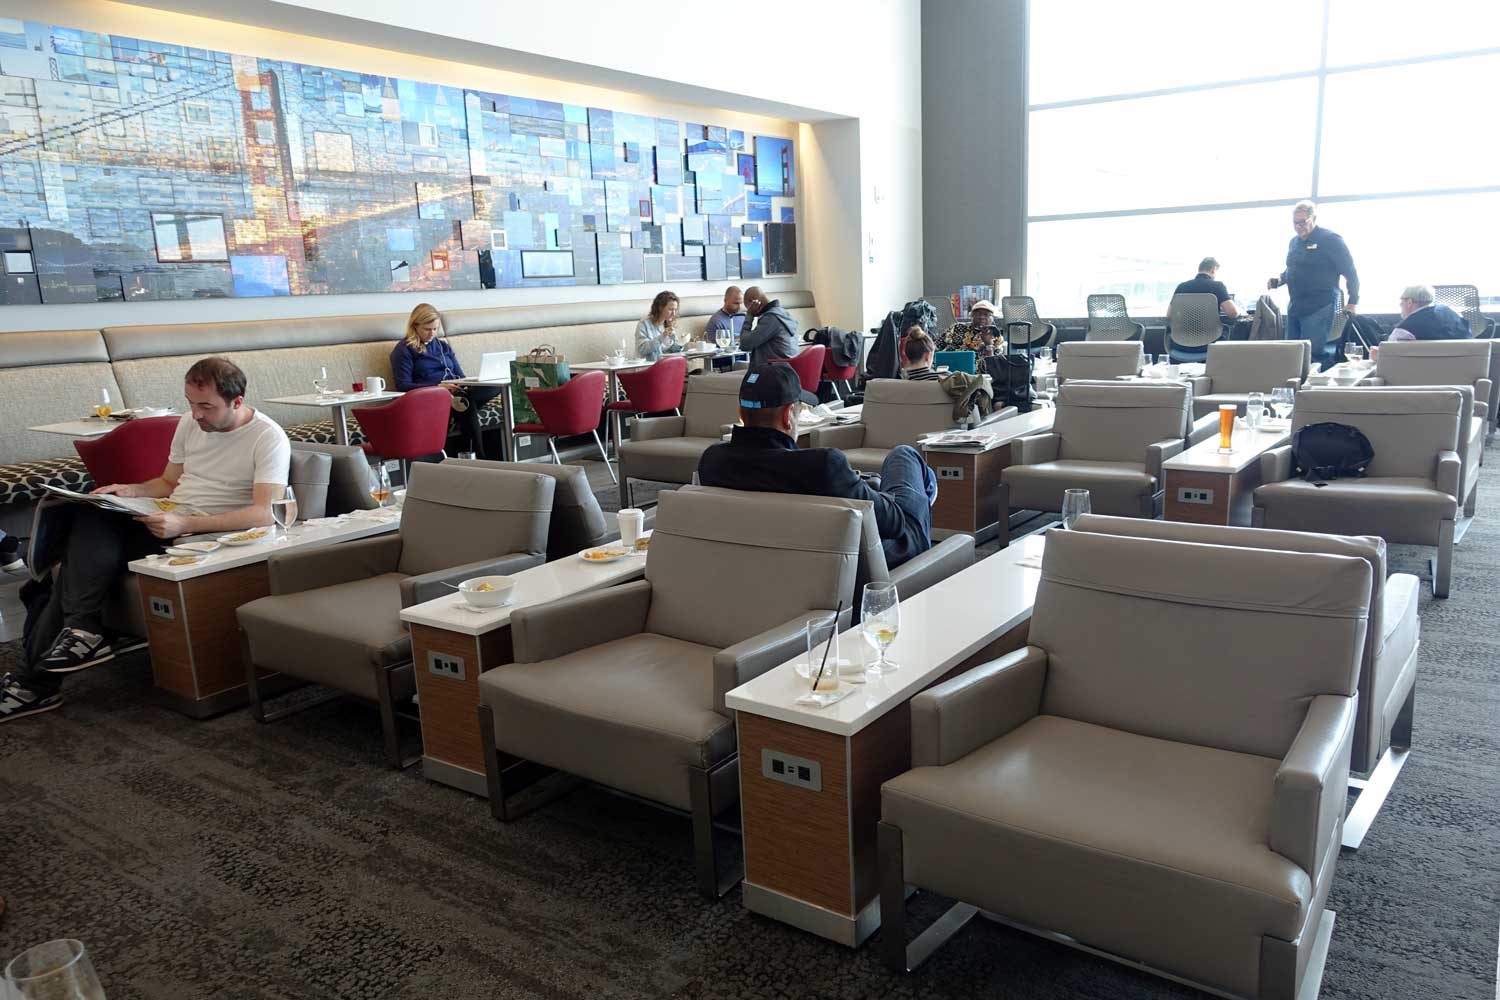 delta sky club san francisco main lounge area